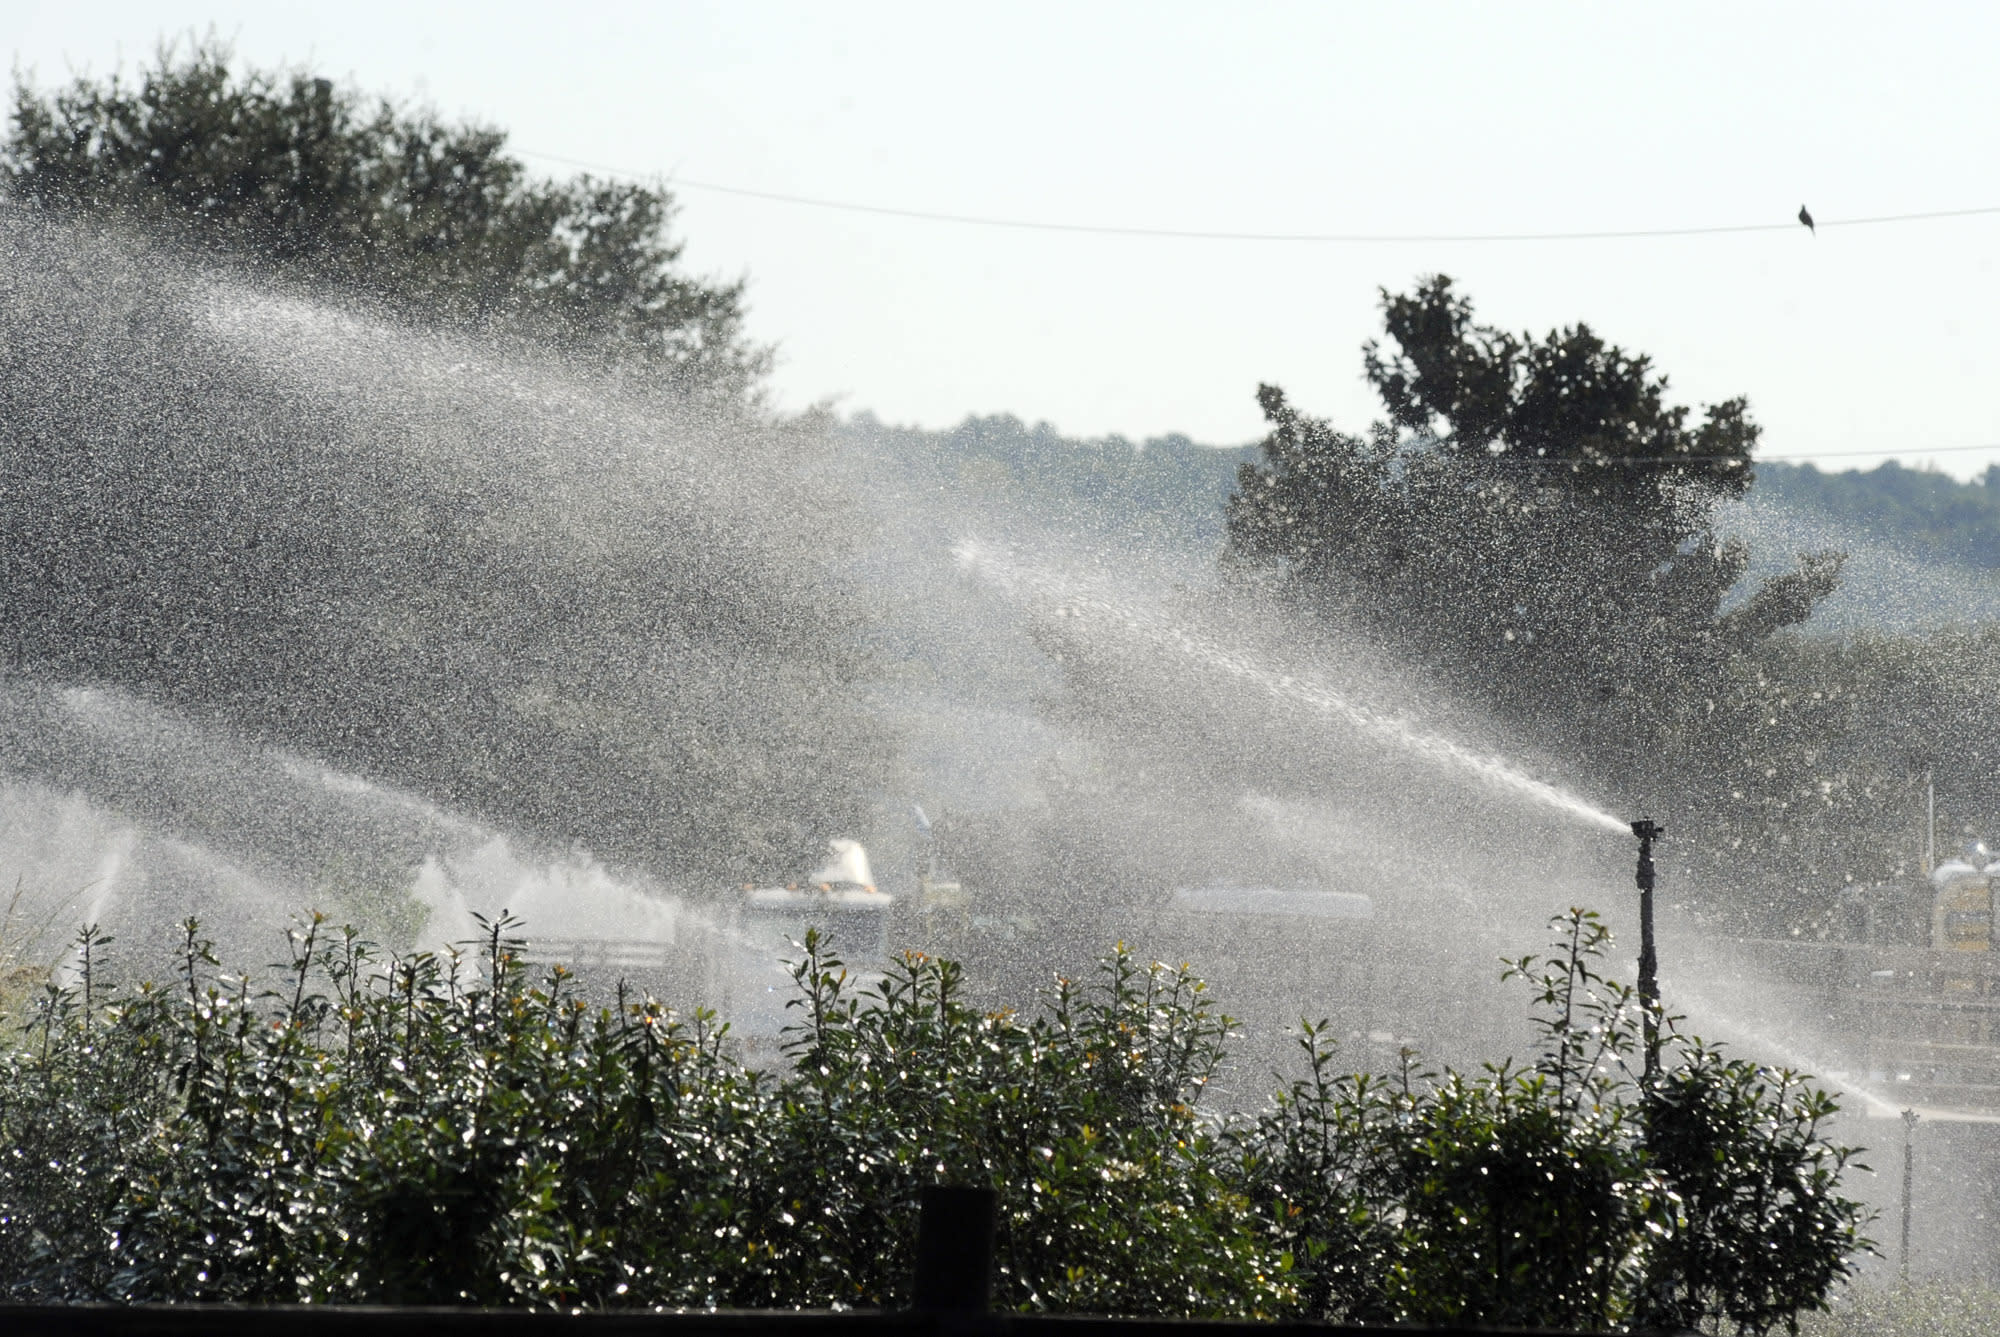 Sprinklers spray water on plants at Green Valley Farms, a commercial nursery in Montevallo, Ala., on Thursday, Sept. 26, 2019. Weeks of dry, hot weather across the Deep South have worsened a drought that a federal assessment says is affecting more than 11 million people across five states. (AP Photo/Jay Reeves)